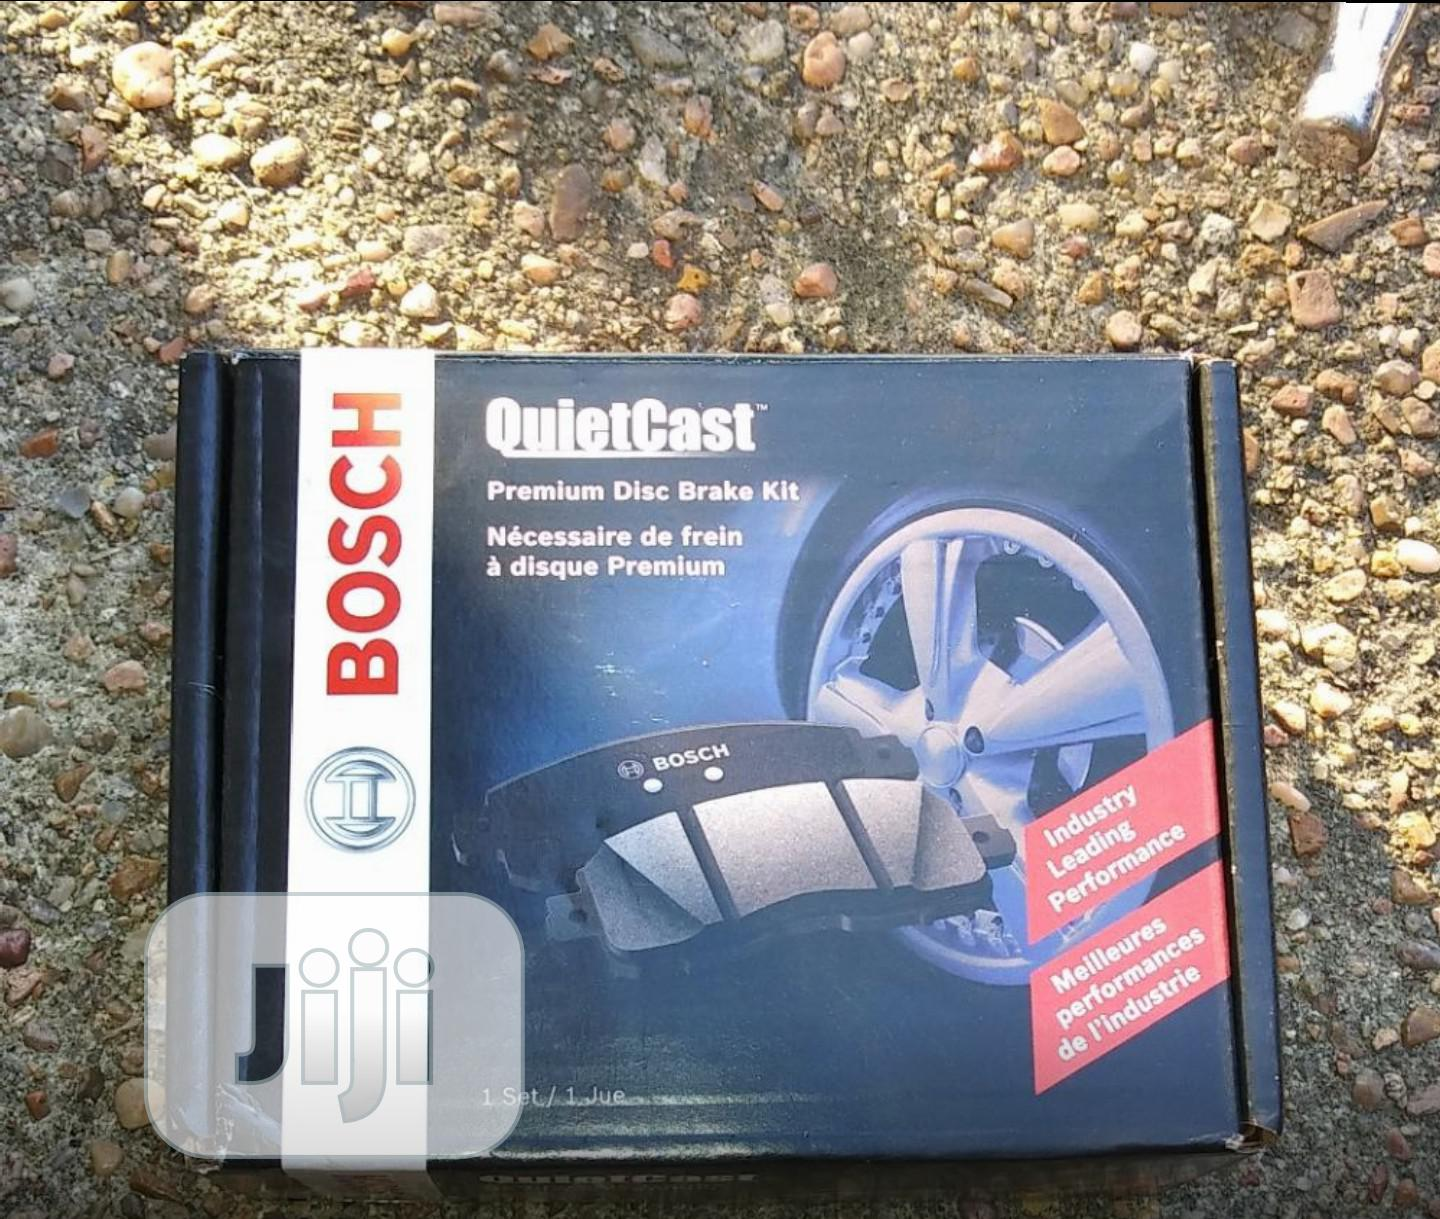 Genuine Toyota Lexus Bosch BC1304 Quietcast Breakpads   Vehicle Parts & Accessories for sale in Central Business Dis, Abuja (FCT) State, Nigeria